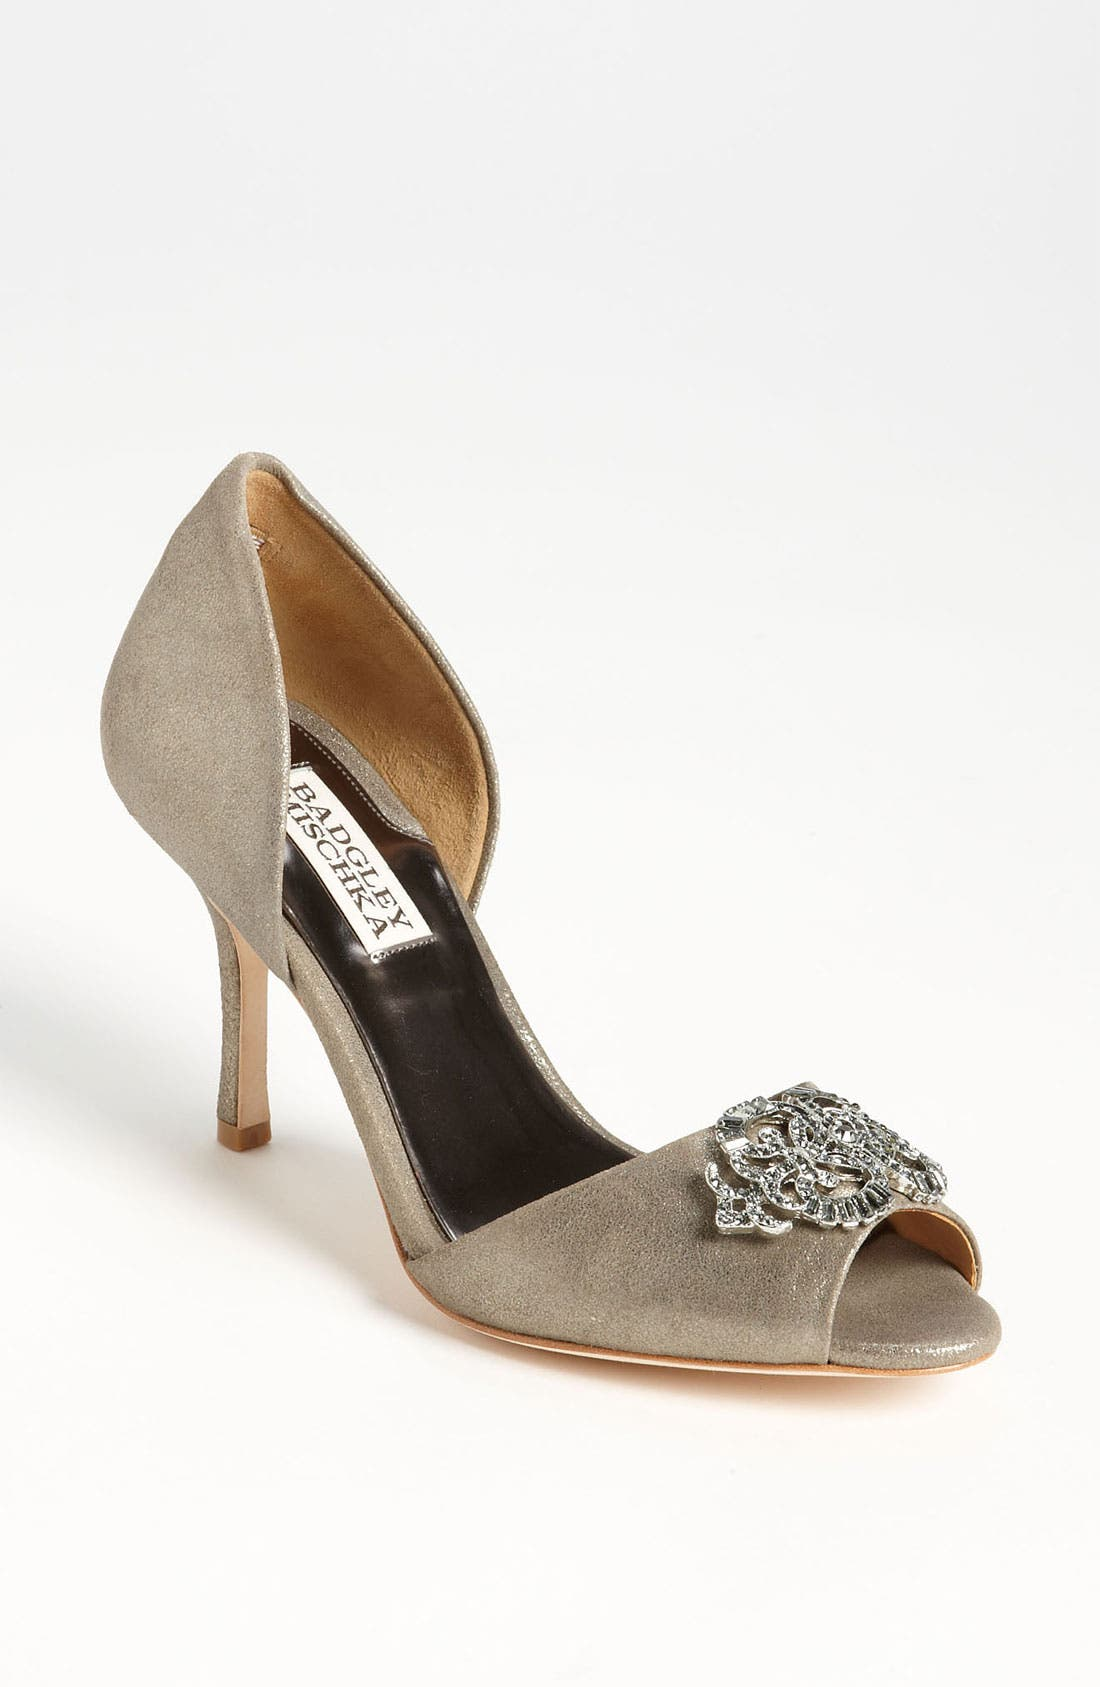 Alternate Image 1 Selected - Badgley Mischka 'Salsa' Pump